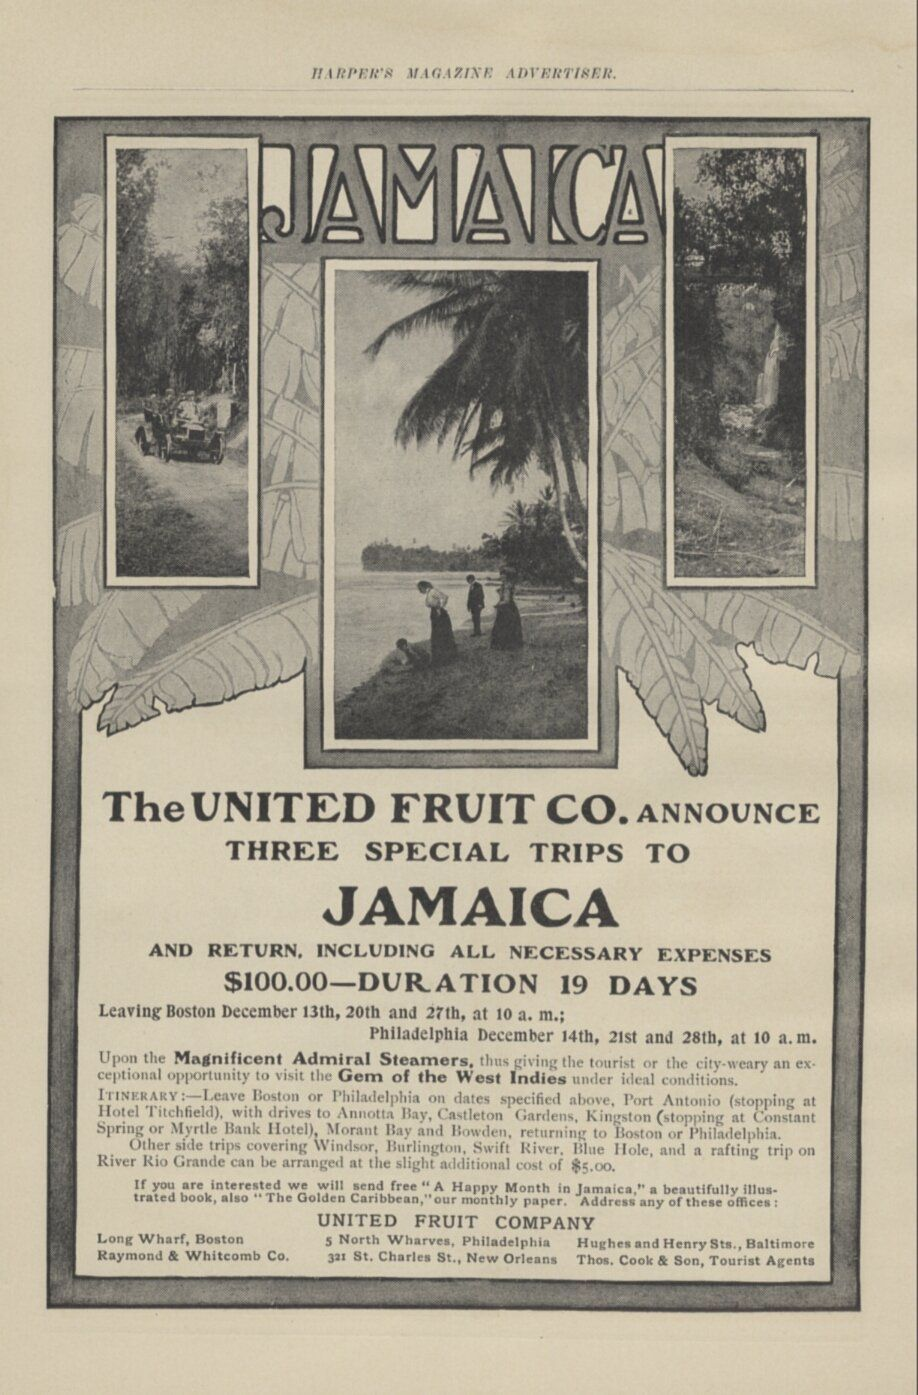 1905 Vintage Ad Travel to Jamaica United Fruit Co Steamships Cruise 111905HM